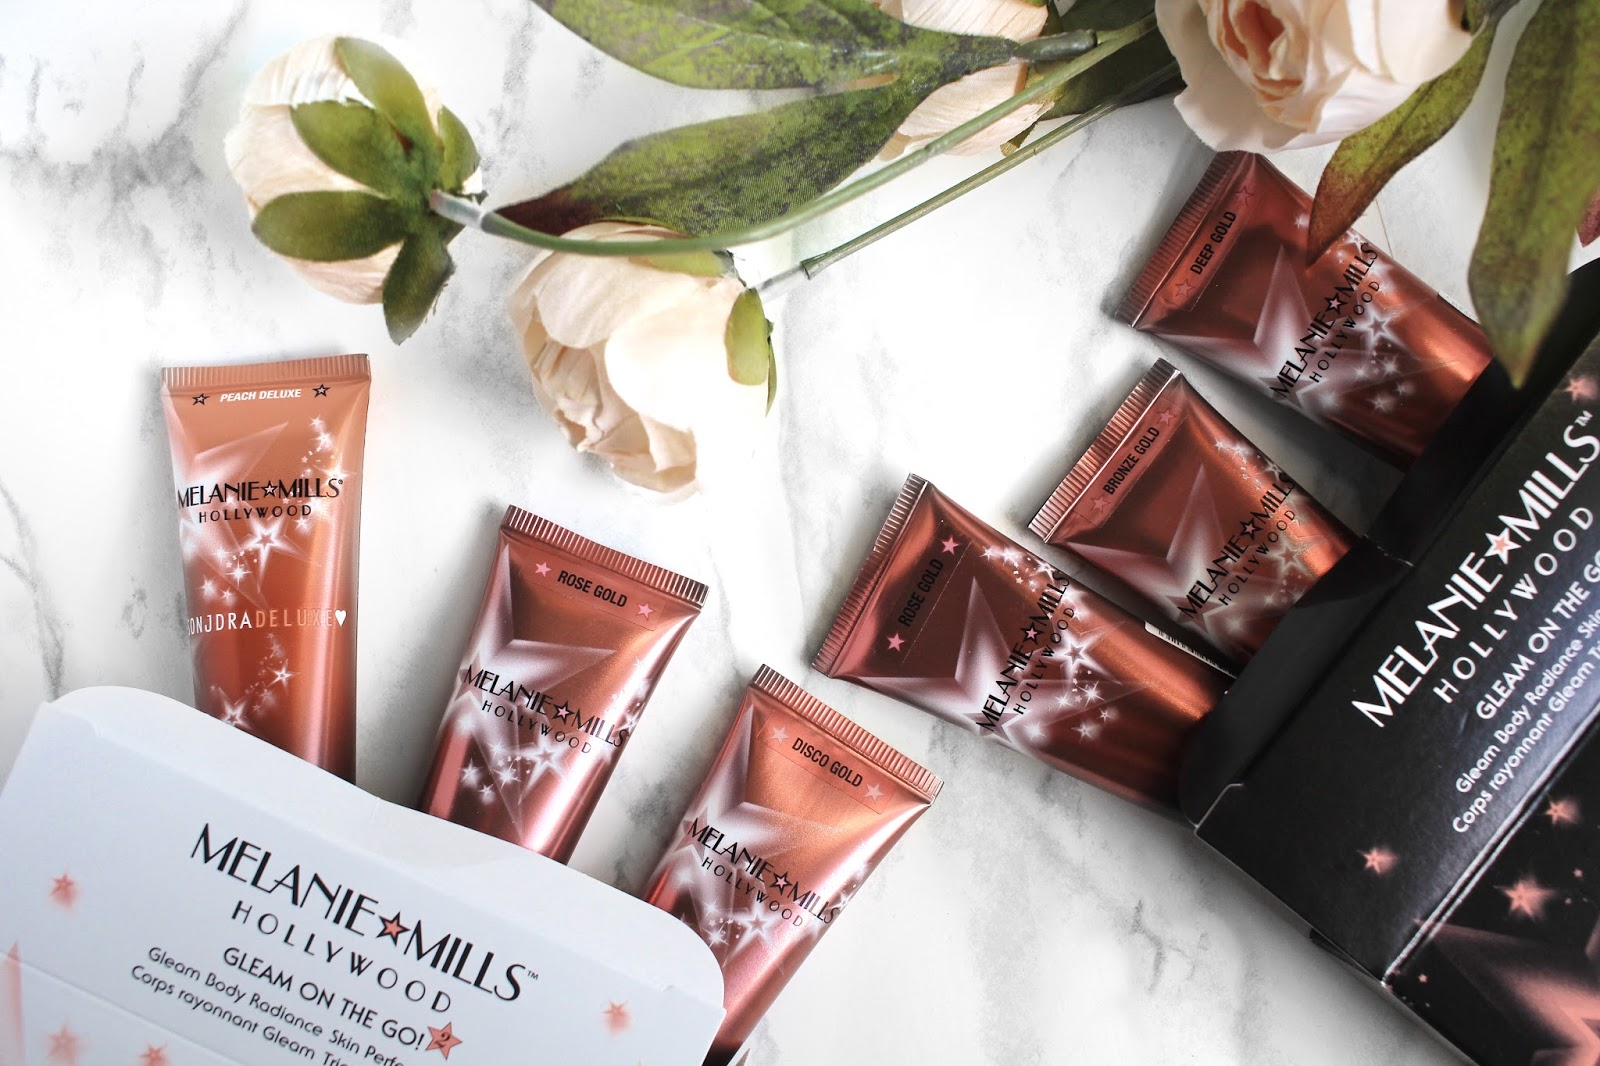 Keeping Your Sun-Kissed Glow After Summer With Melanie Mills Hollywood Body Radiance